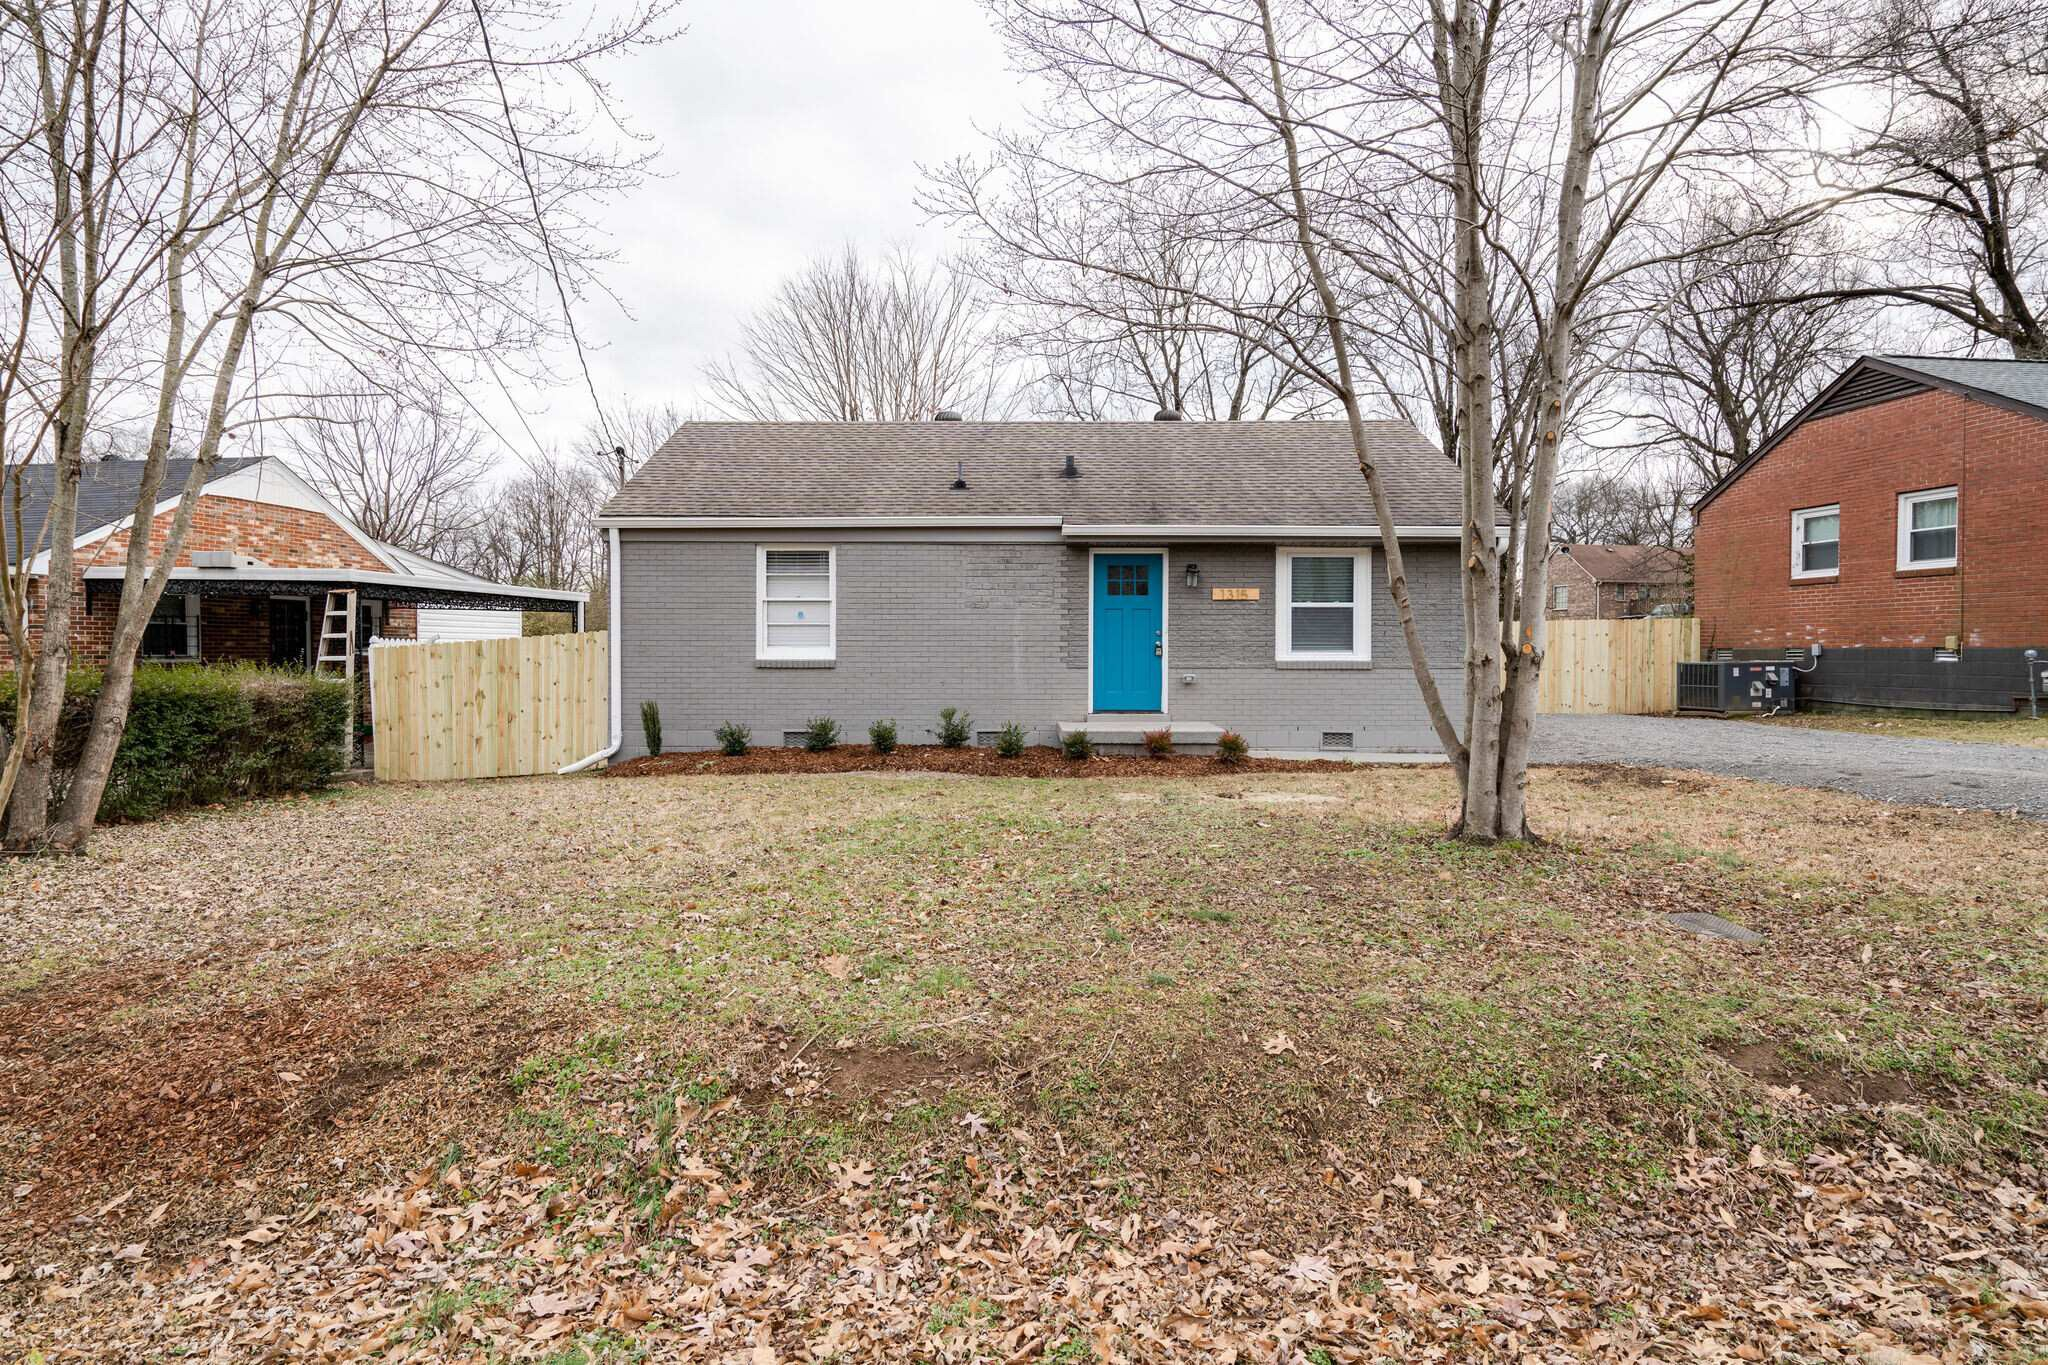 Cute quaint newly Renovated with beautiful finishes. Gorgeous hardwoods throughout, new plumbing, electrical, quartz counter tops  and updated appliances. Open floor plan with Stunning new bathroom tile work with updated fixtures! Great location nestled in the Cleveland Park area of East Nashville, close to all the shops and hot spots in the area, 5 mins from downtown exceptional walk ability! Large fenced in lot with shed in backyard, plenty of room for entertaining. Priced to sell Coming Soon!